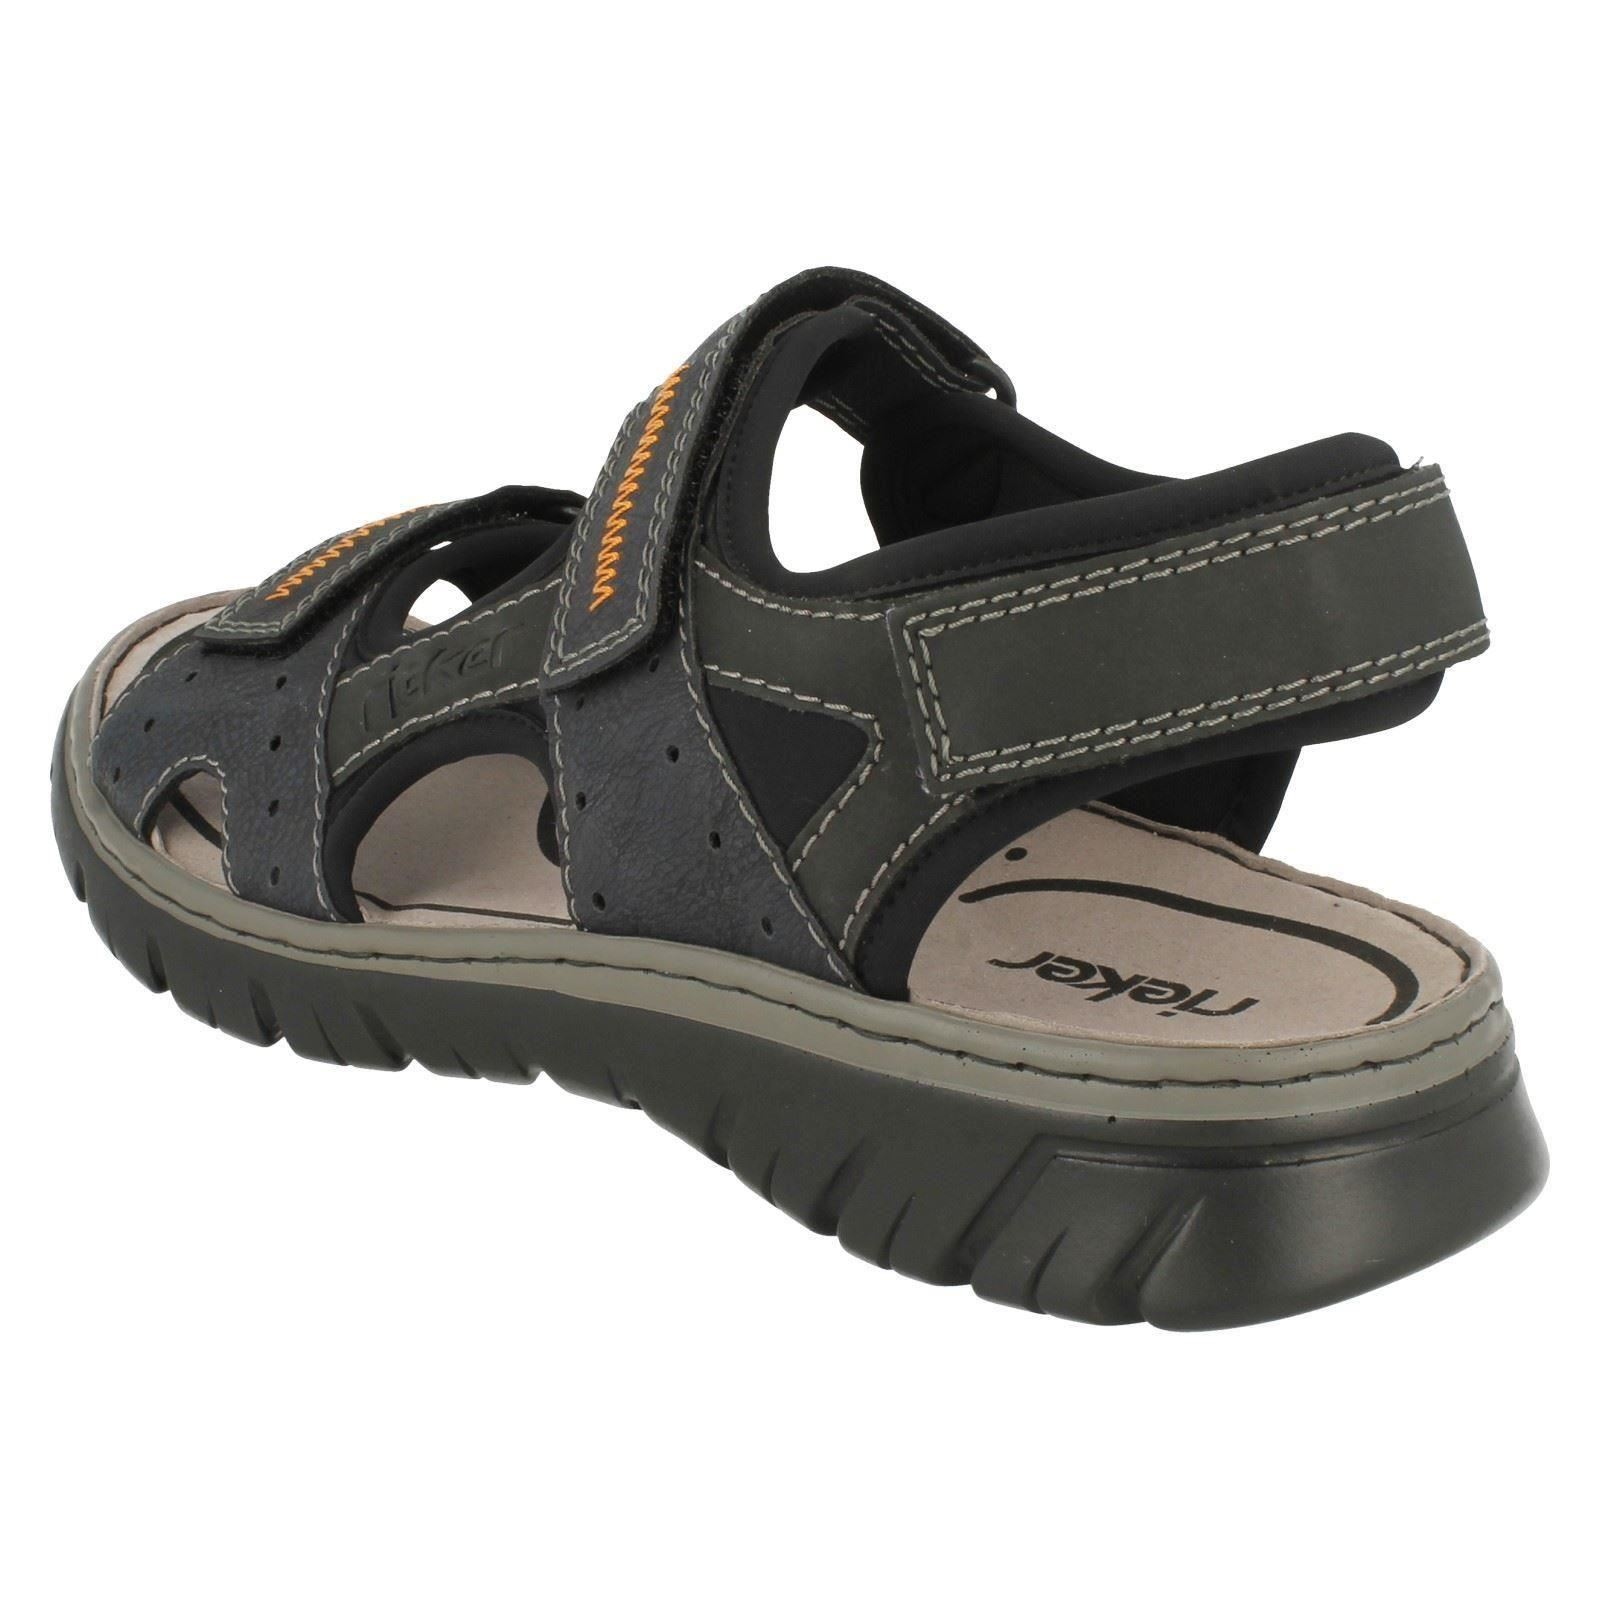 Uomo Rieker Casual Sandales Sandales Casual 26757 6e4176